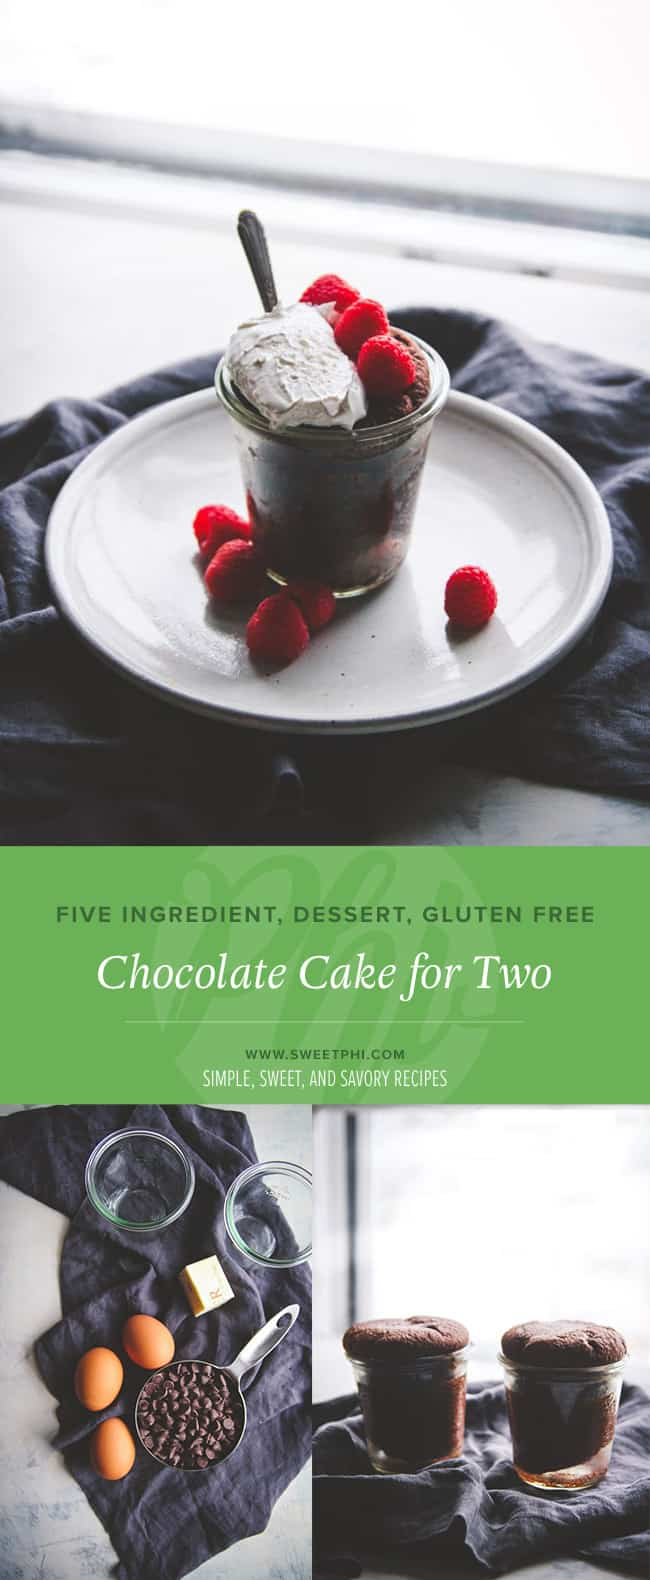 The perfect dessert for two is chocolate cake